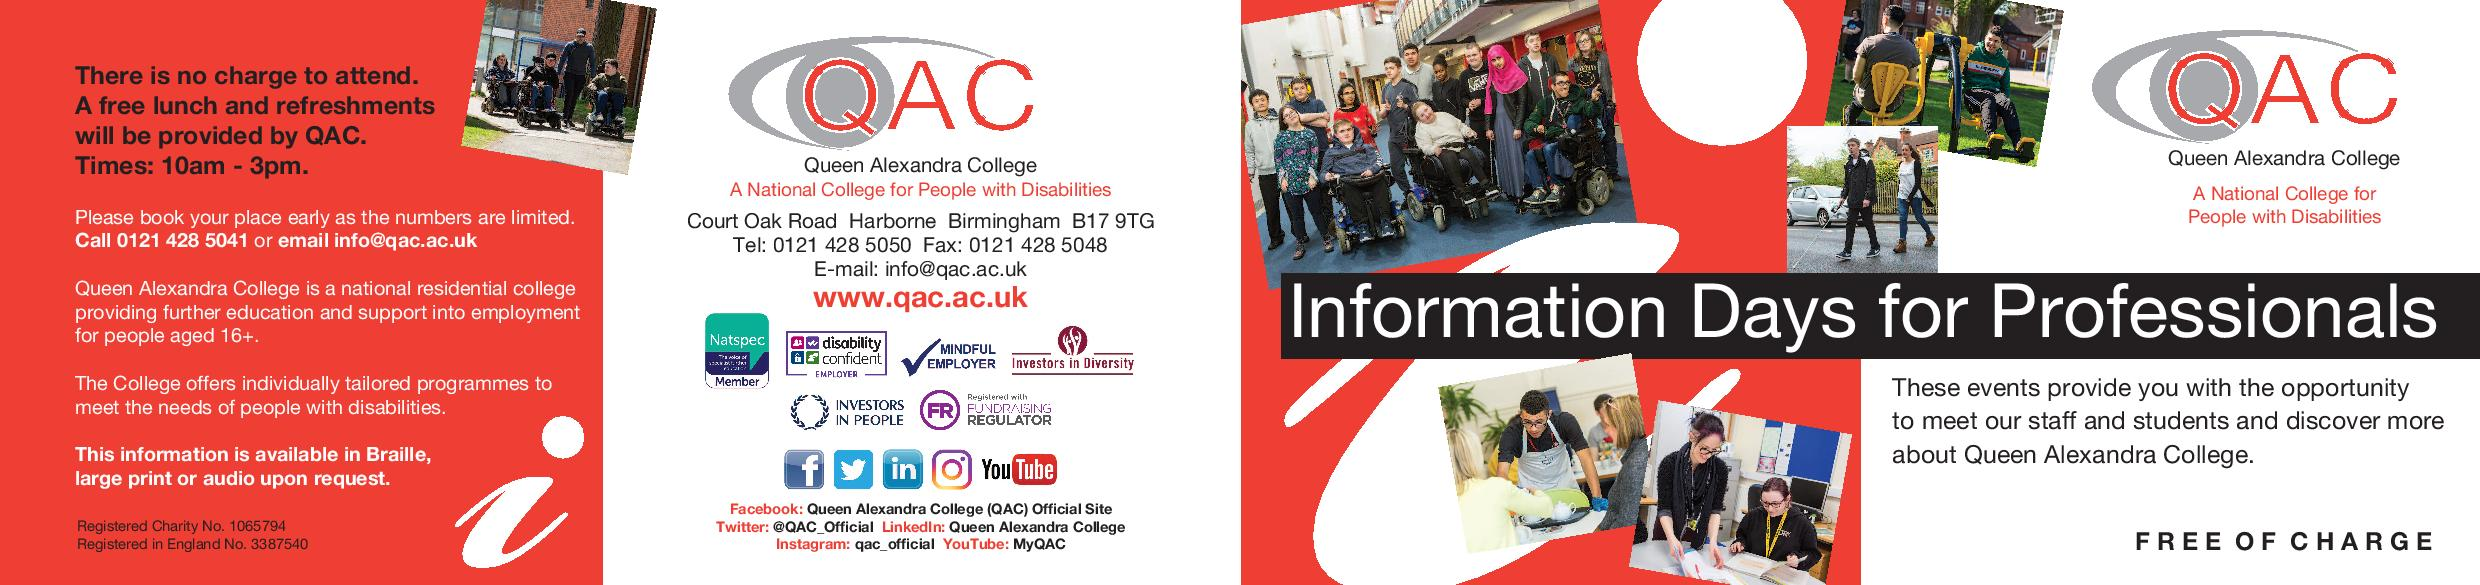 Information Day for professionals at QAC